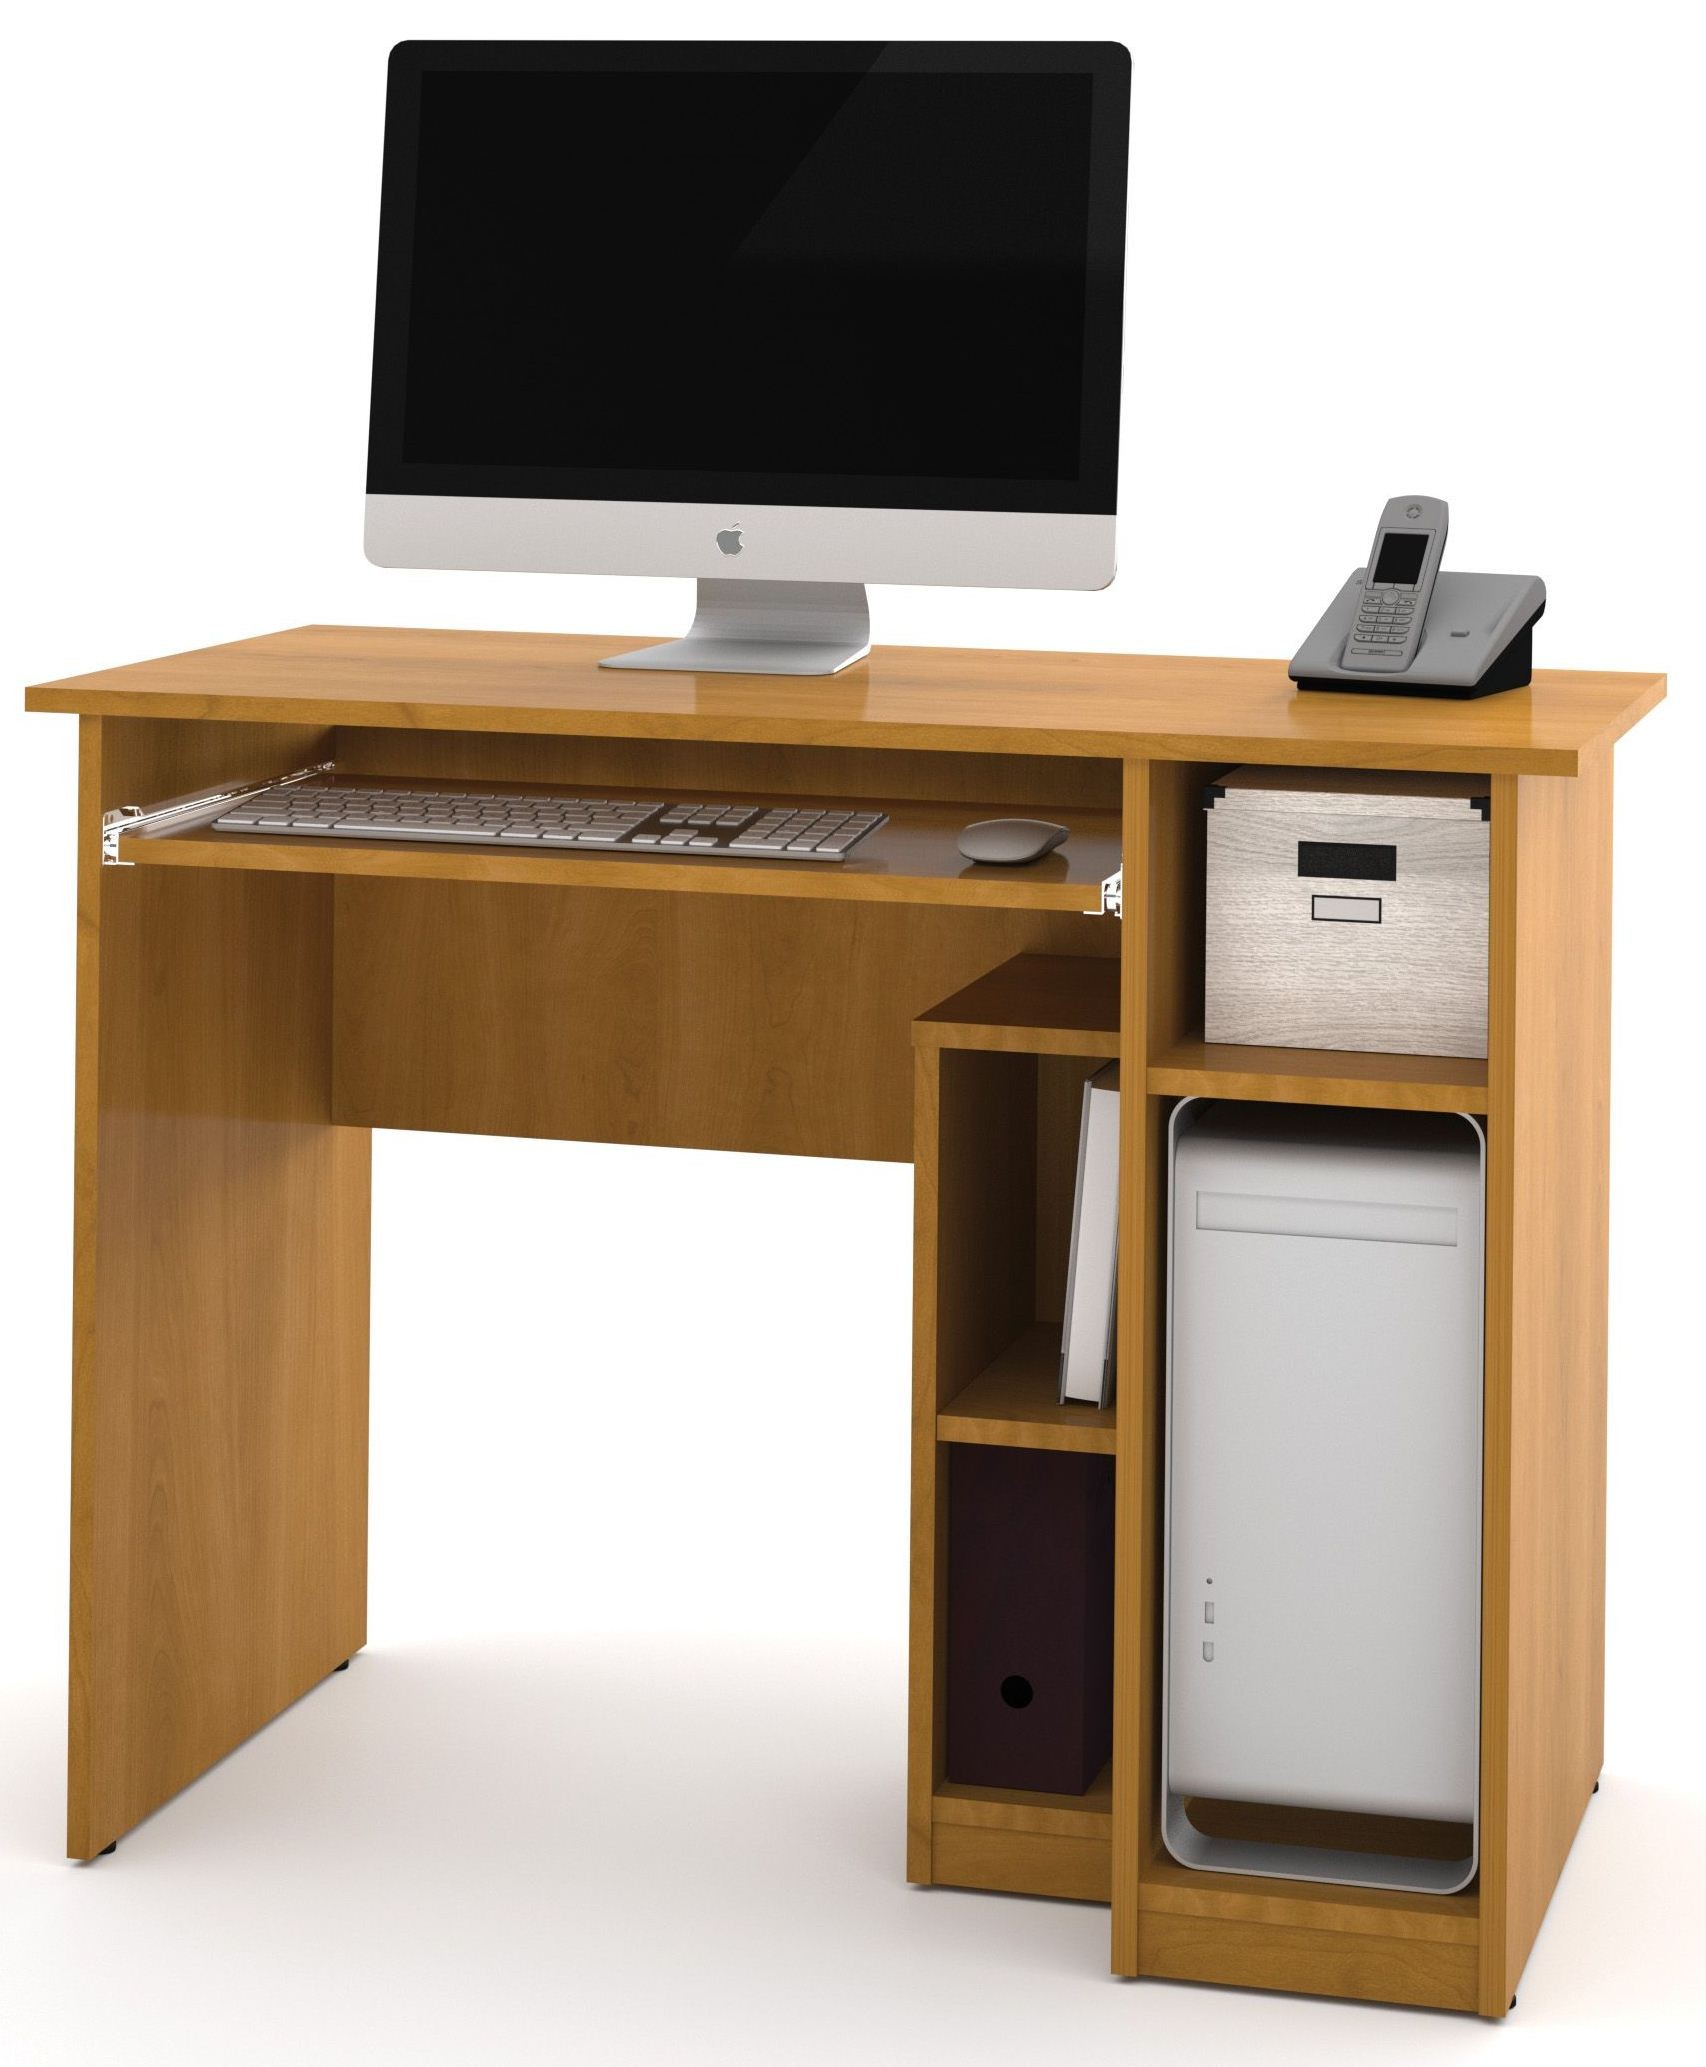 Basic Cappuccino Cherry Computer Desk from Bestar 90400